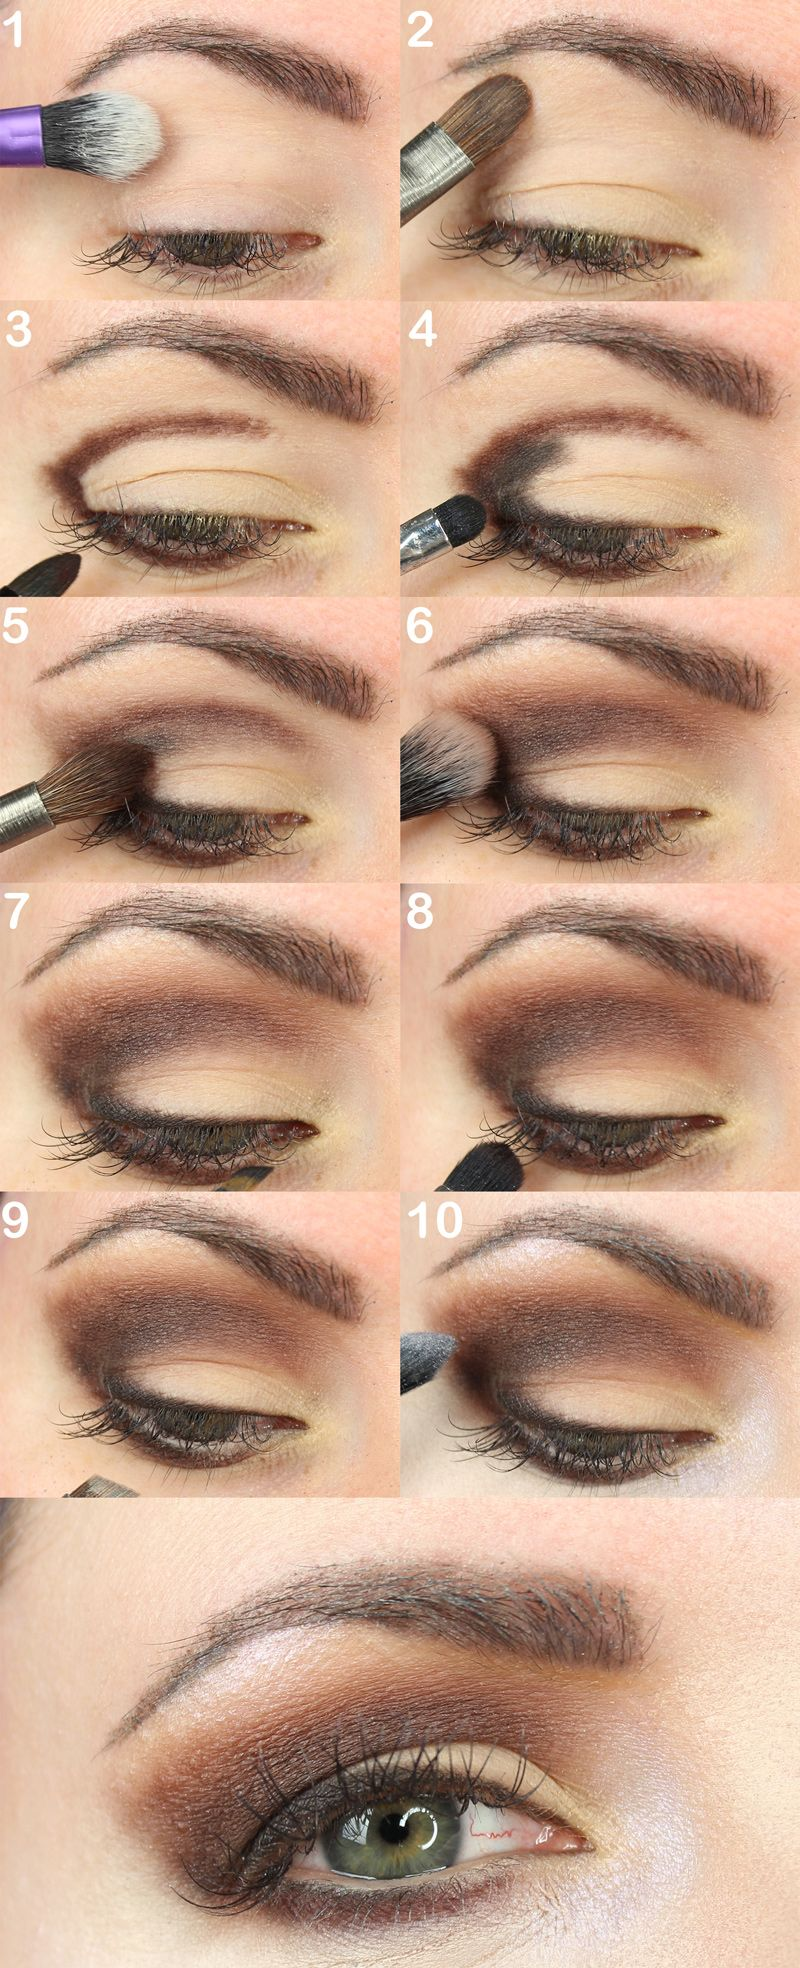 3c4e226b2785 Urban Decay Naked Ultimate Basics Palette Tutorial. Courtney shares the eye  mapping technique to create a neutral brown everyday eyeshadow look for  hooded ...